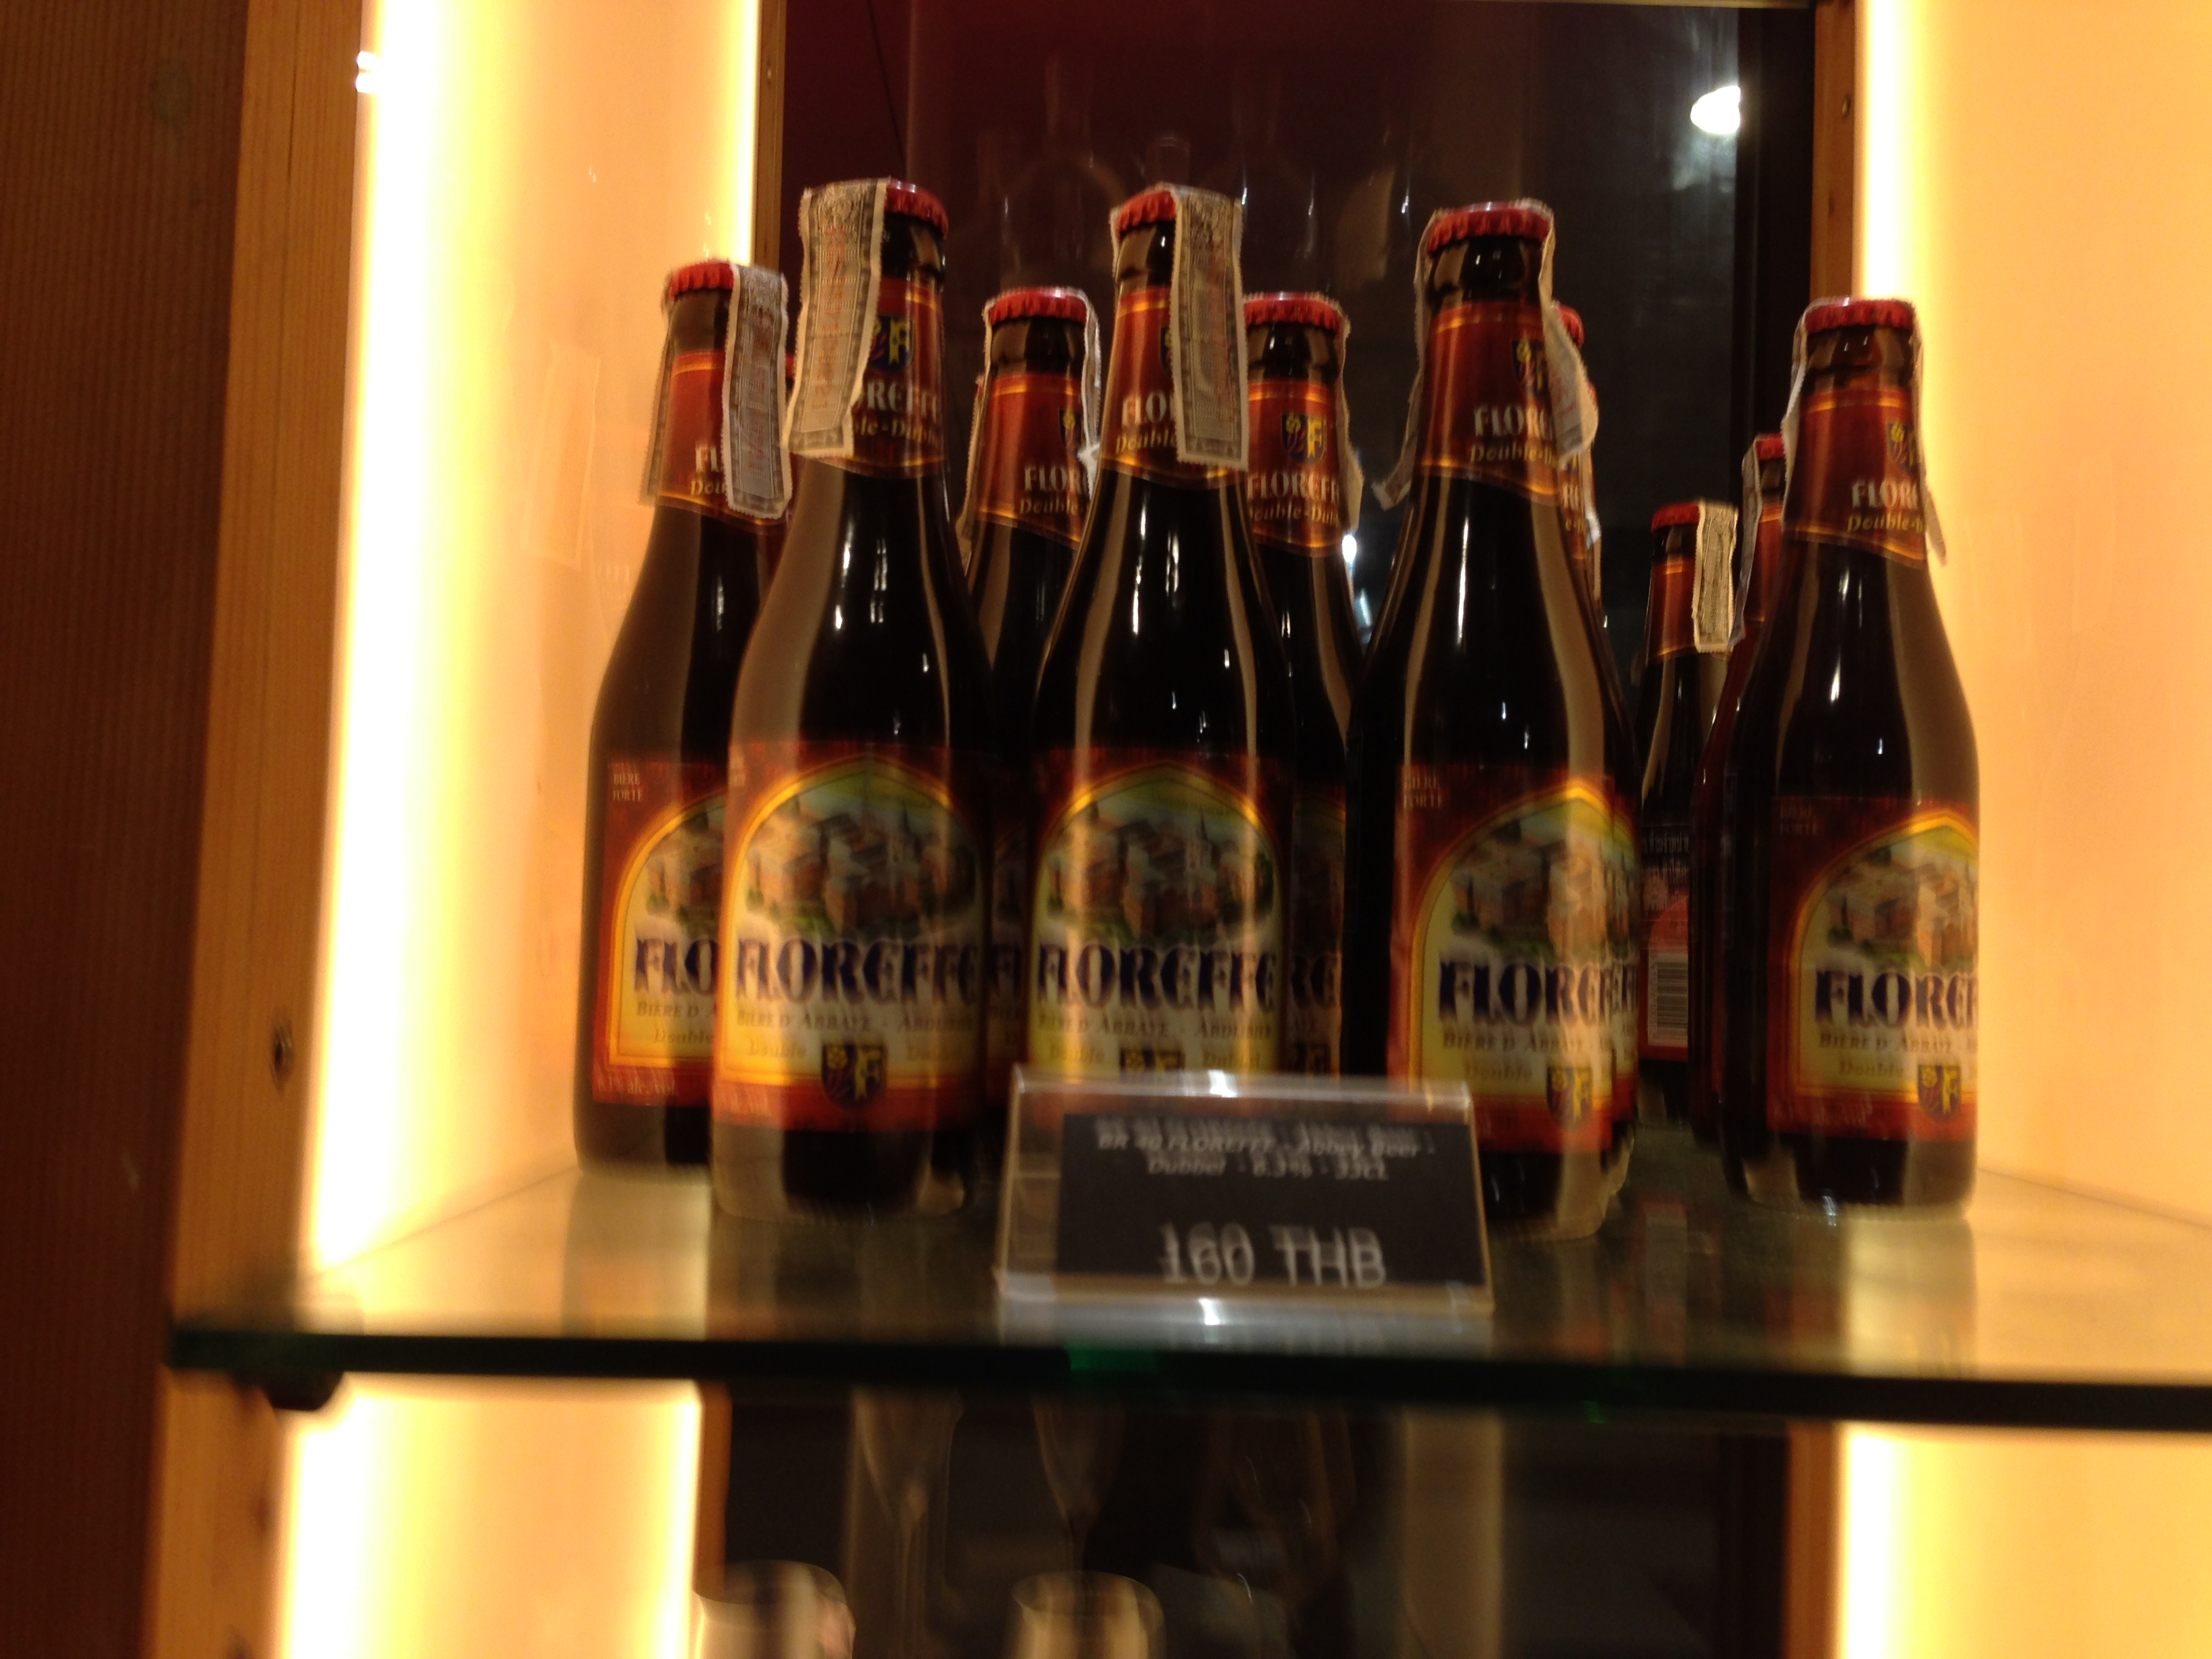 Bottles of Floreffe, a Belgian beer, displayed on a glass shelf. The price (160 Baht) is displayed.